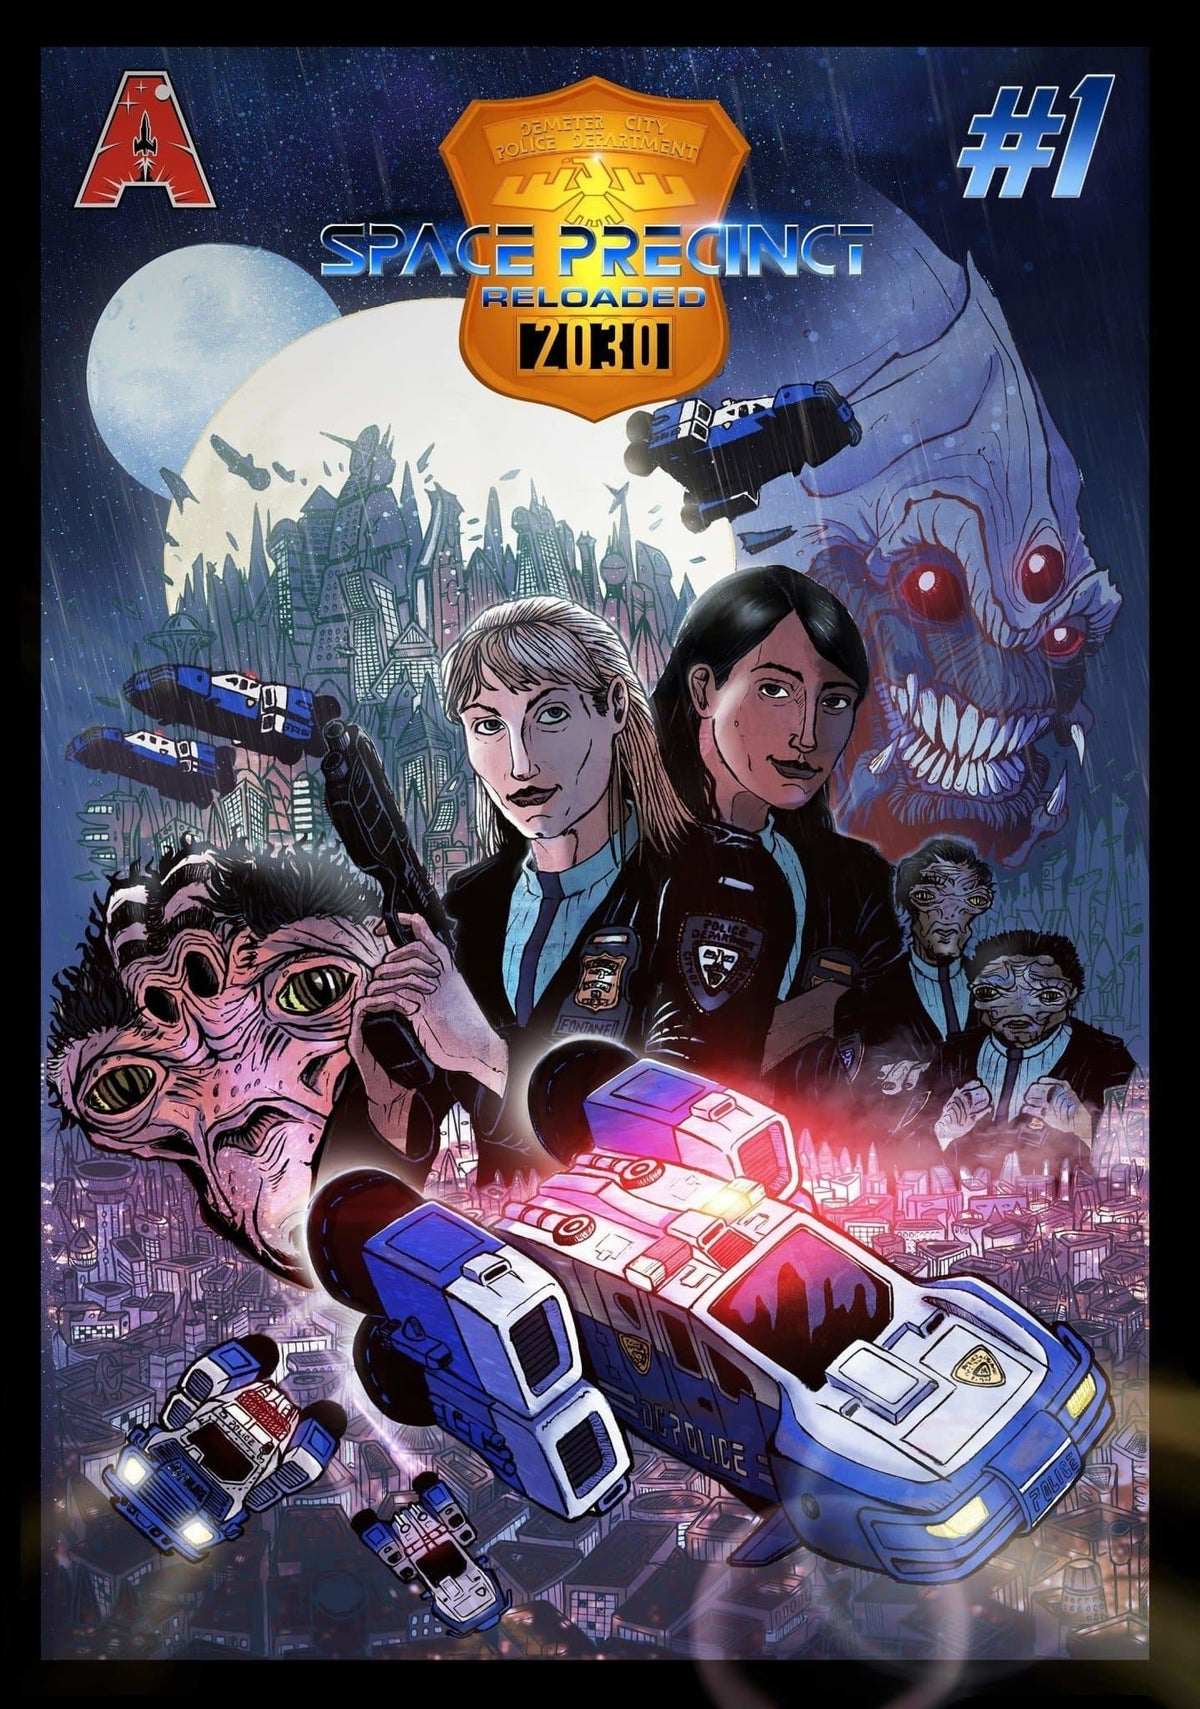 Space Precinct Comic - Space Precinct Reloaded: Volume 1 - The Gerry Anderson Store